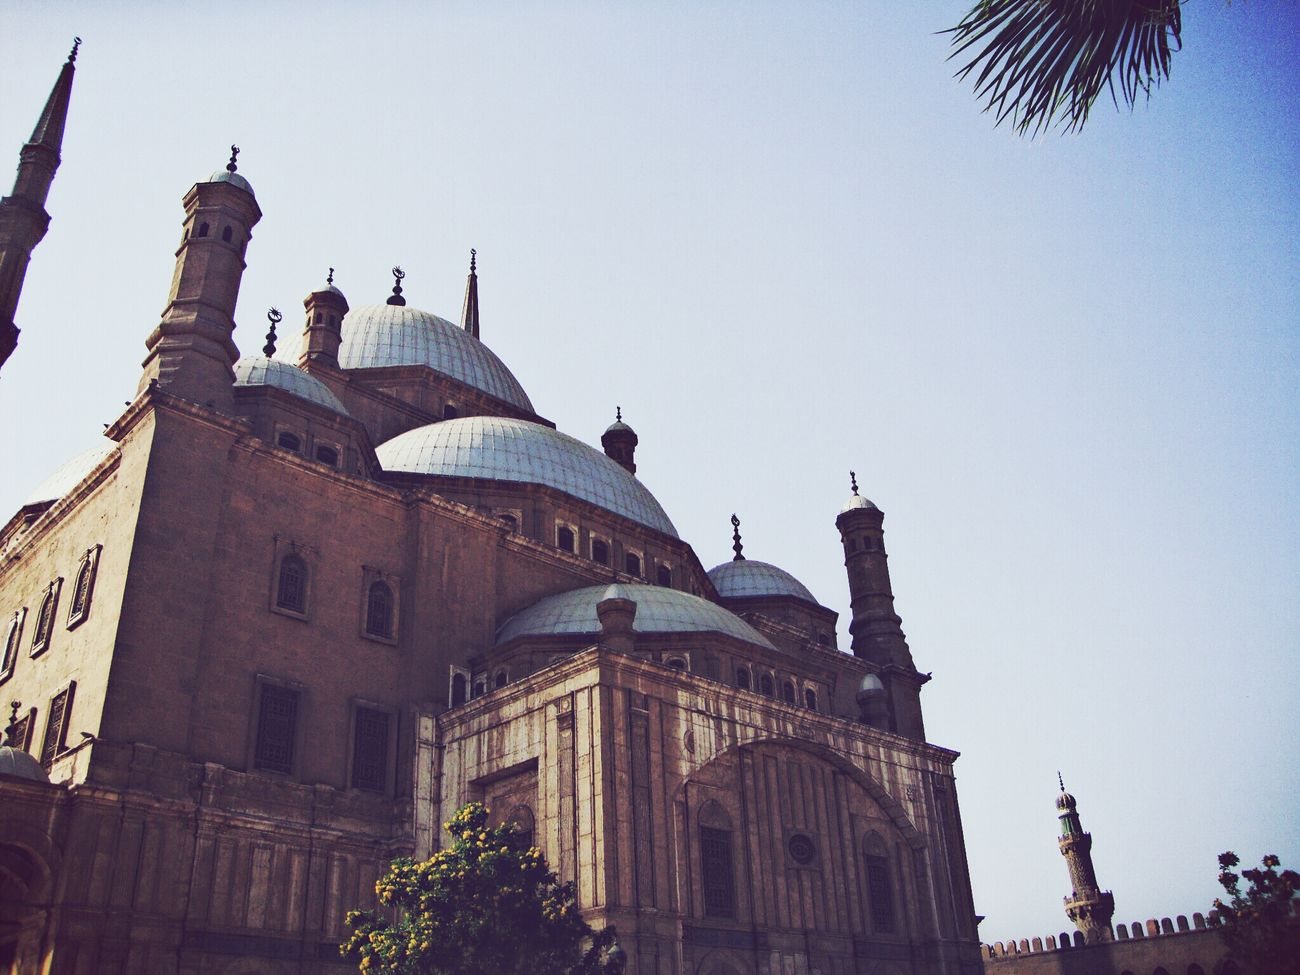 Hello World Taking Photos :) Salah_aldeen_castle Mohamed Ali Mosque Masjid مسجد_محمد_علي القاهرة Cairo Egypt Cairo Egypt